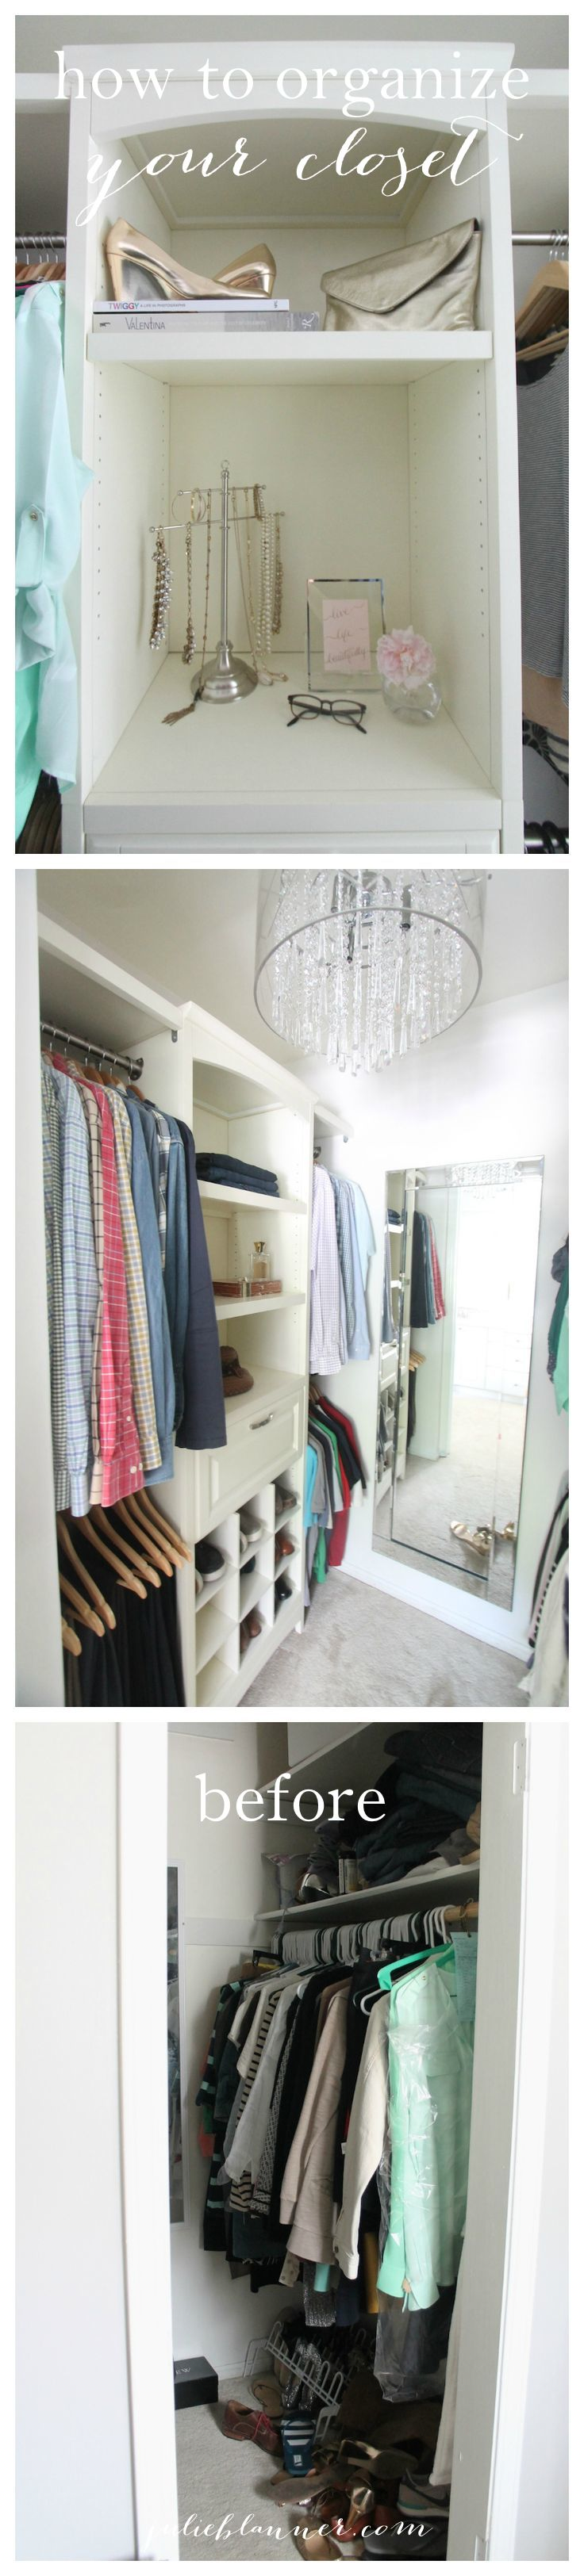 organizing tips pinterest closet singla walk edit naina wardrobe in walking to your images ideas best stylecaster organization station hack on ikea